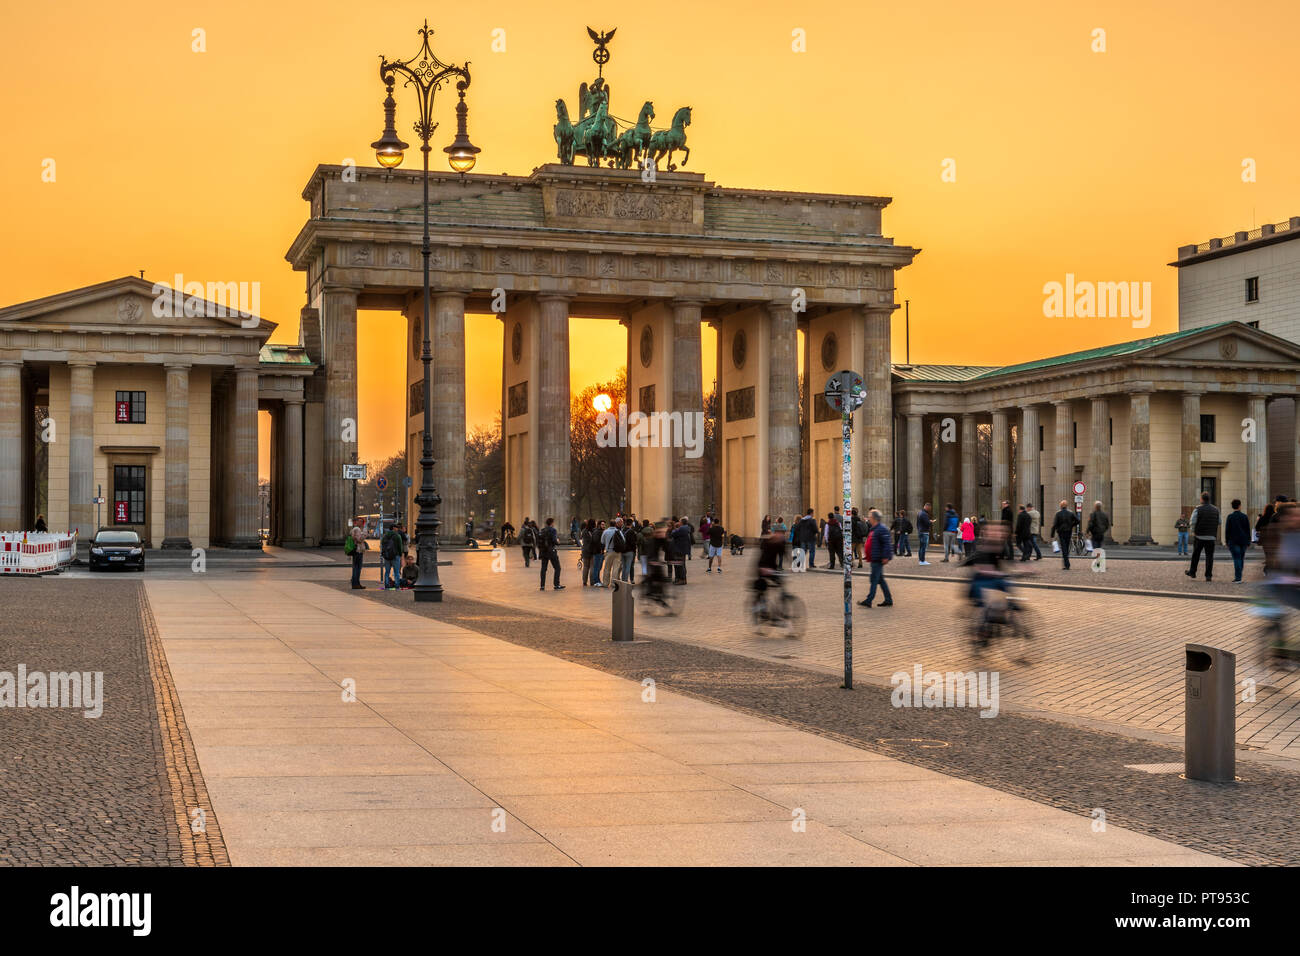 The Brandenburg Gate is an 18th-century neoclassical landmark monument situated to the west of Pariser Platz in the western part of Berlin. Stock Photo